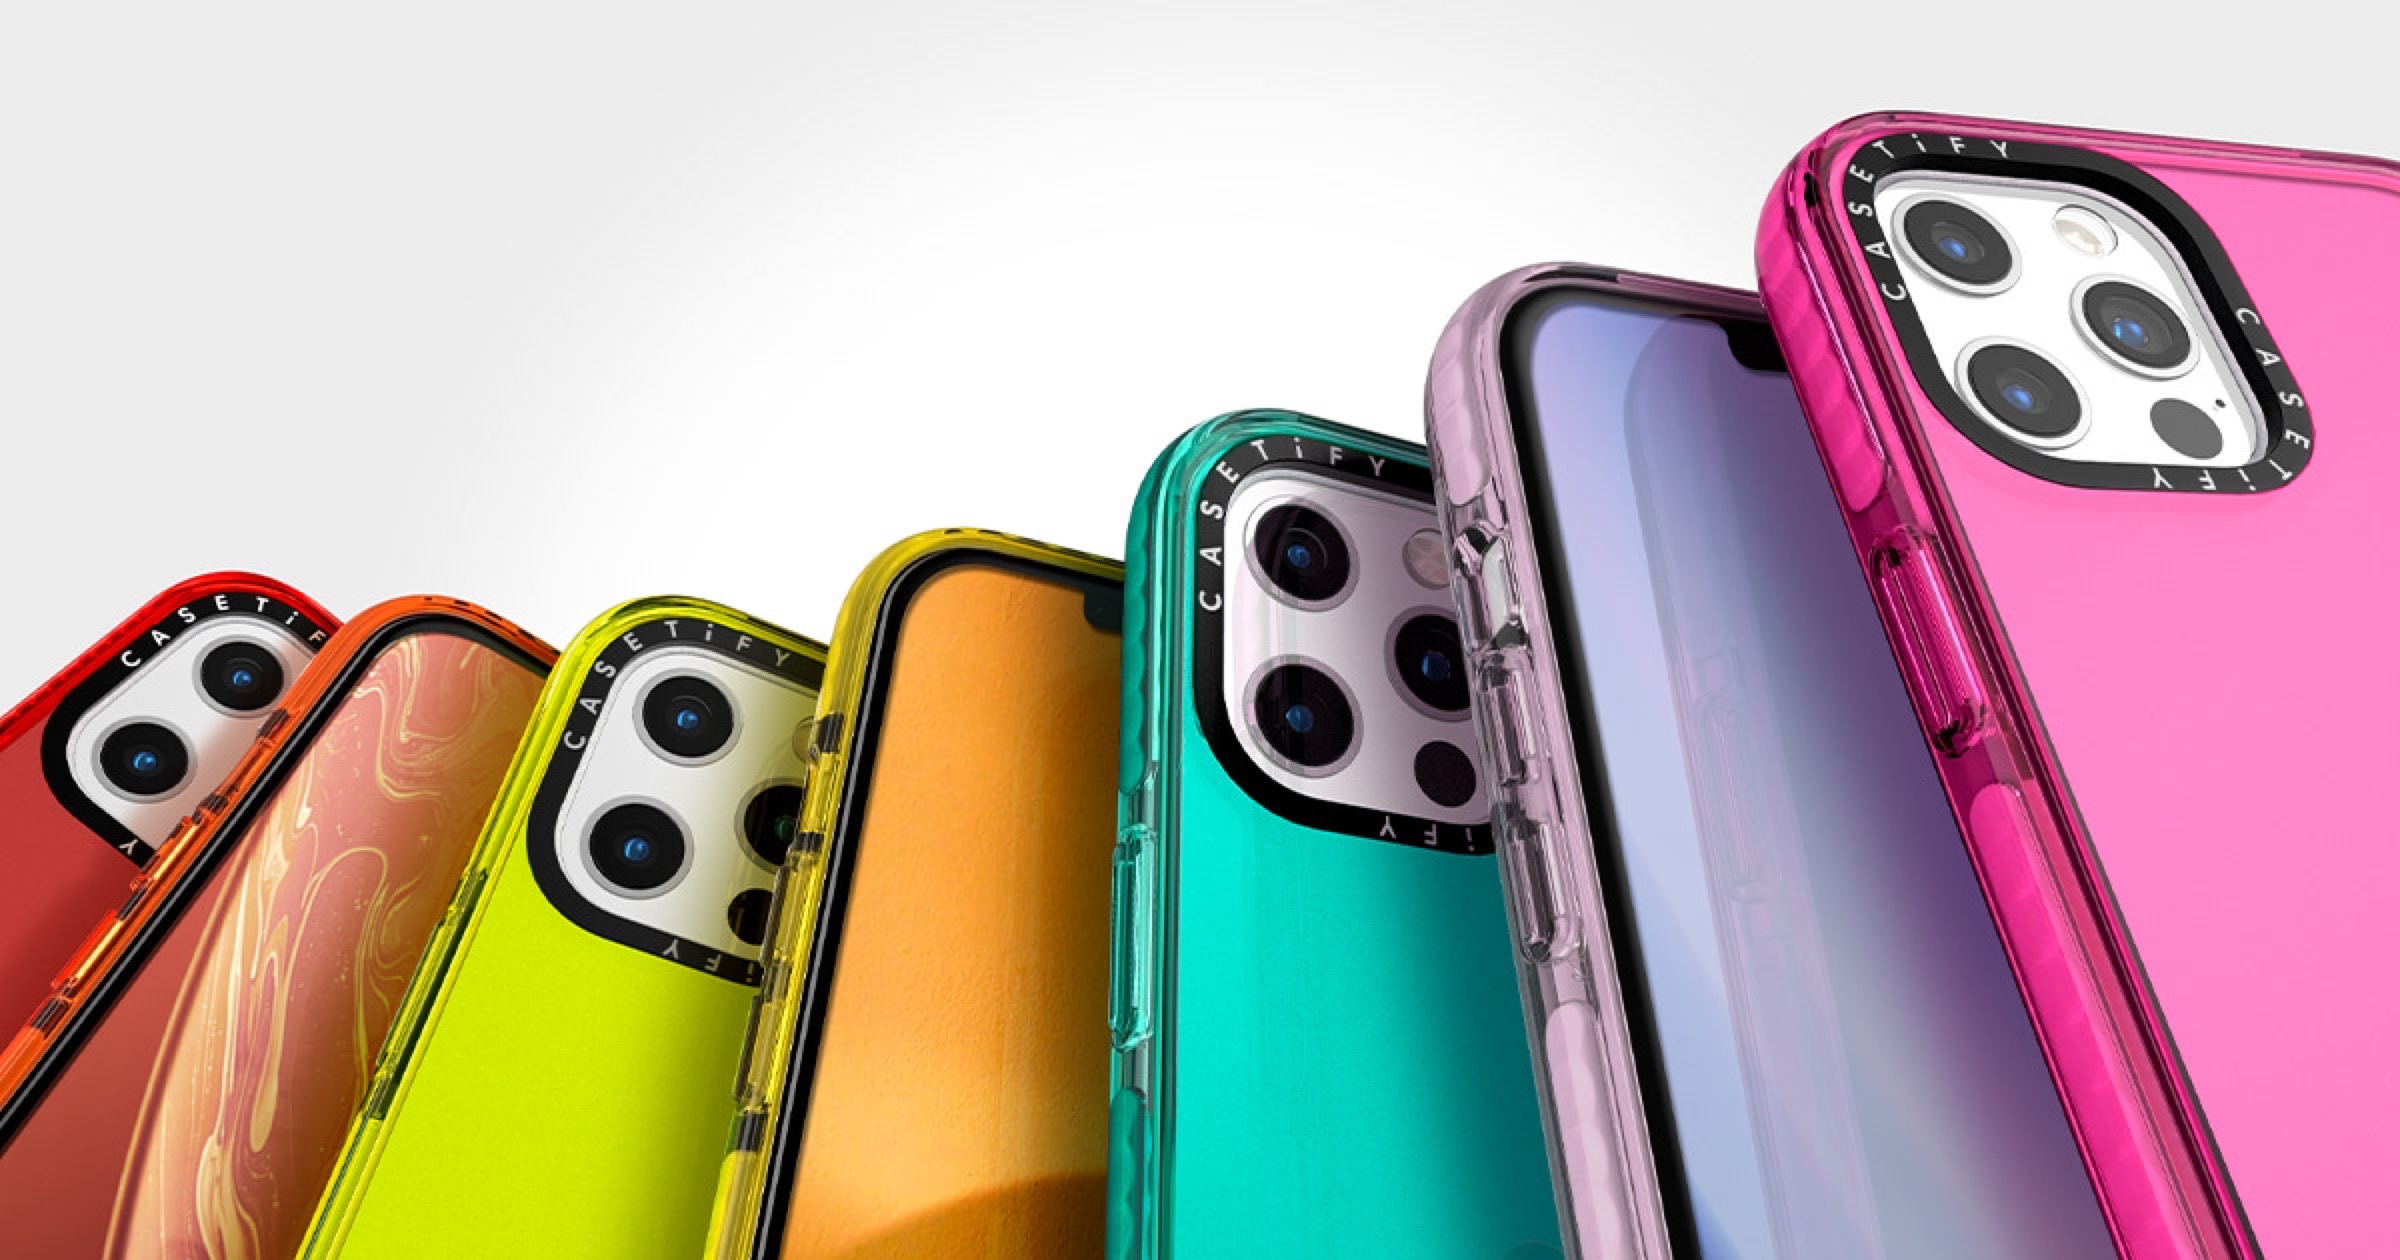 CASETiFY Releases iPhone 12 mini Cases, Pro Max Cases